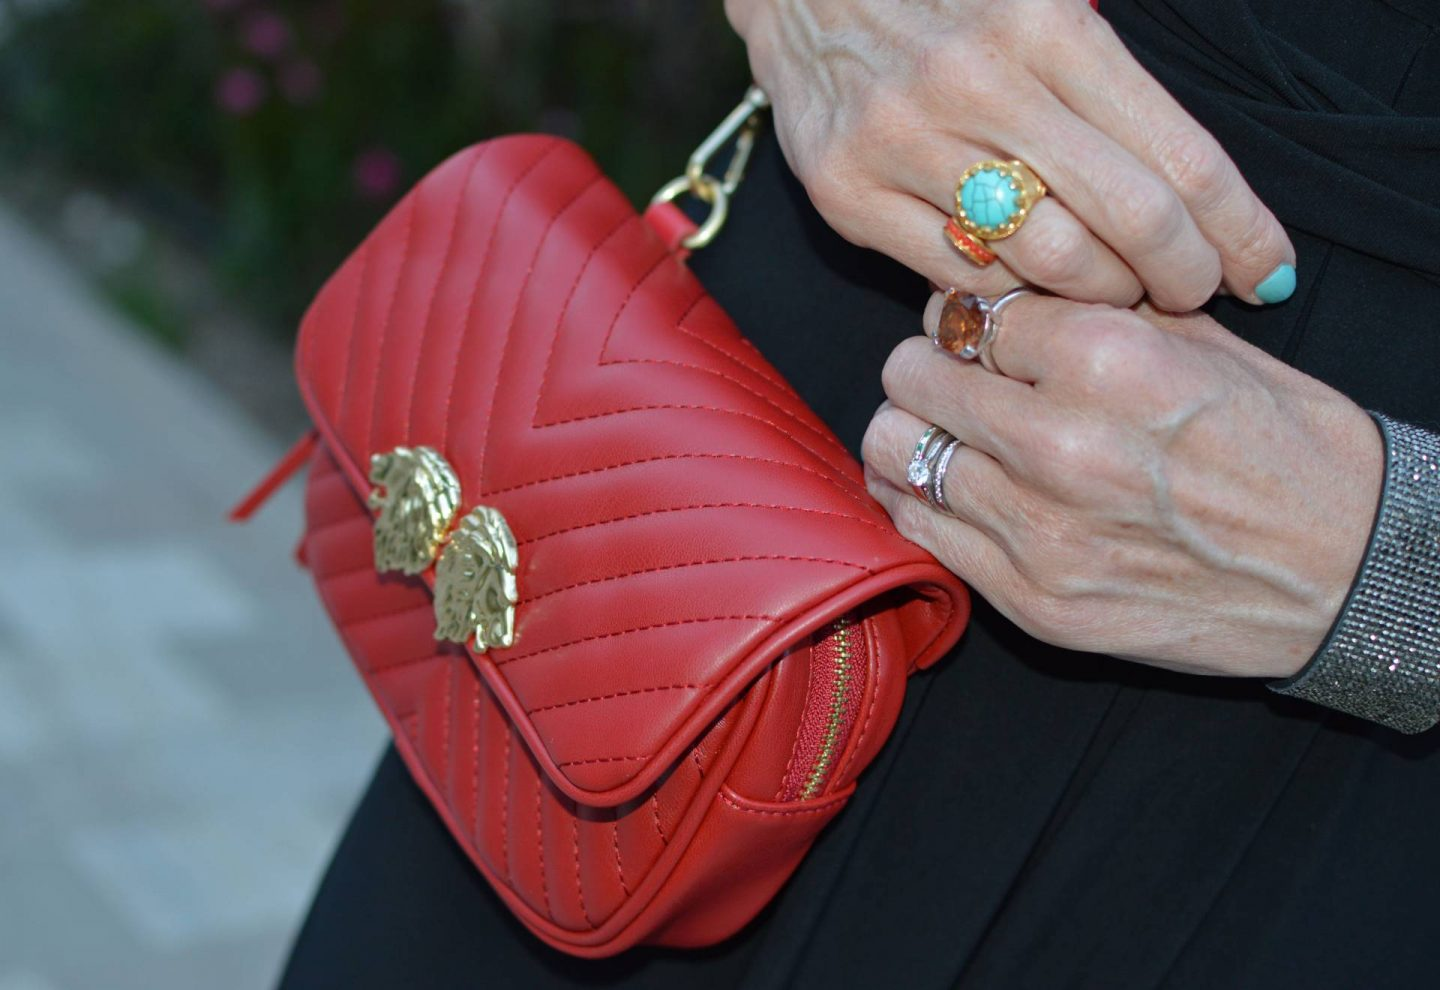 Match Made in Seven: Best of British, Ottoman Hands turquoise ring, Zara red multiway bag